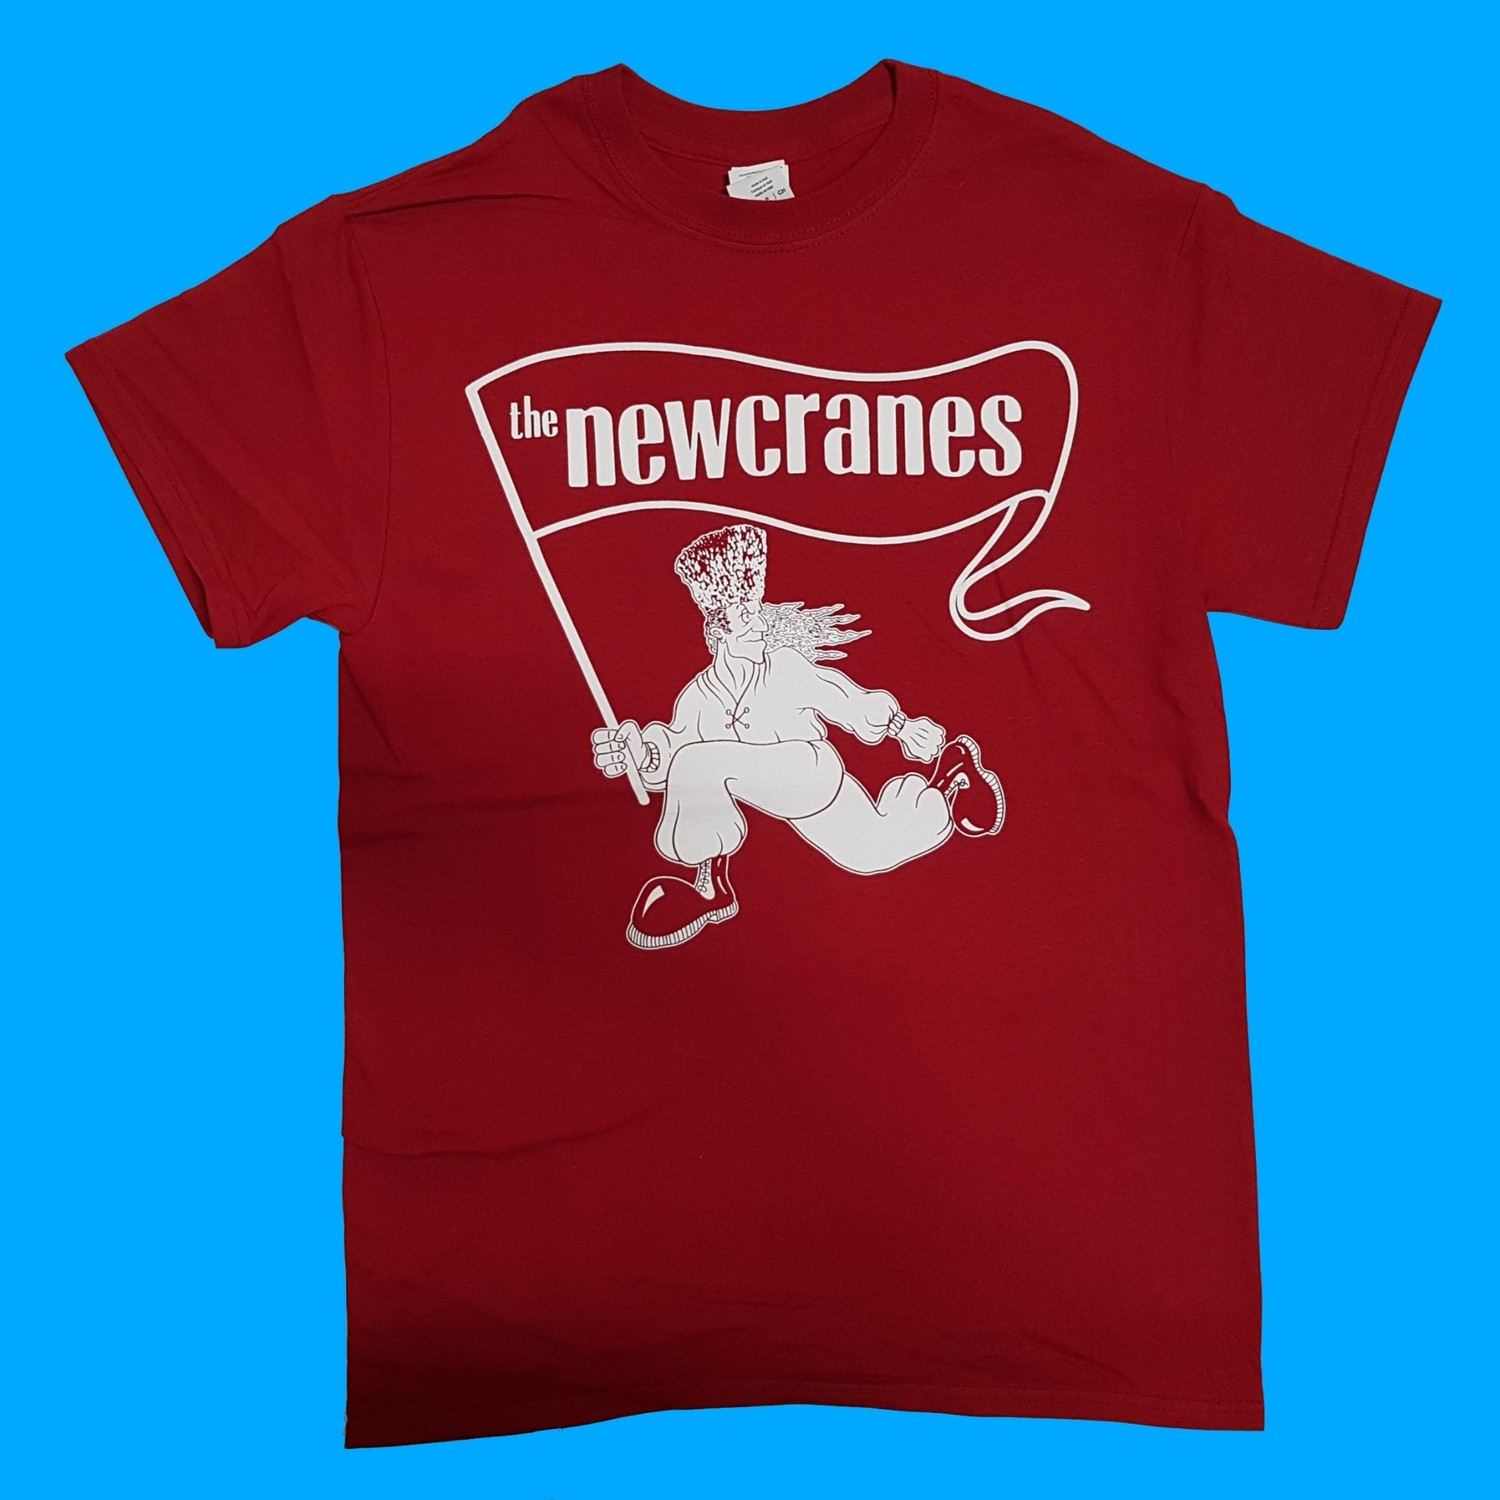 The Newcranes - Back To The Frontline 2019 T-shirt. Colour Red Cardinal.